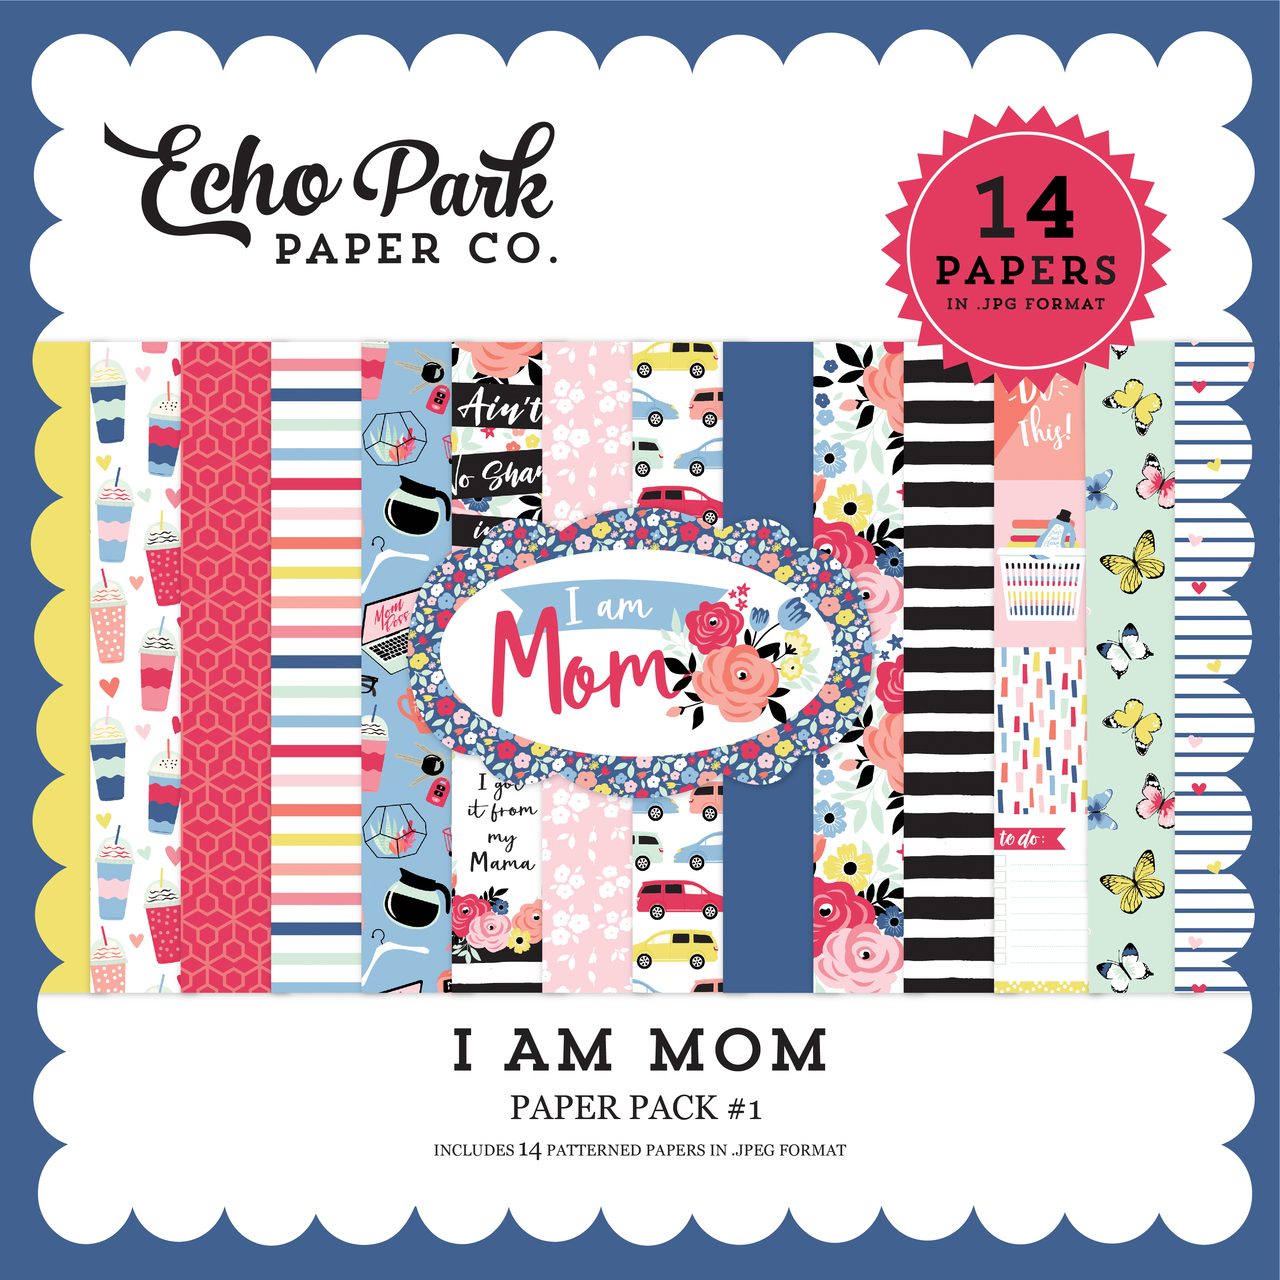 I Am Mom Paper Pack #1